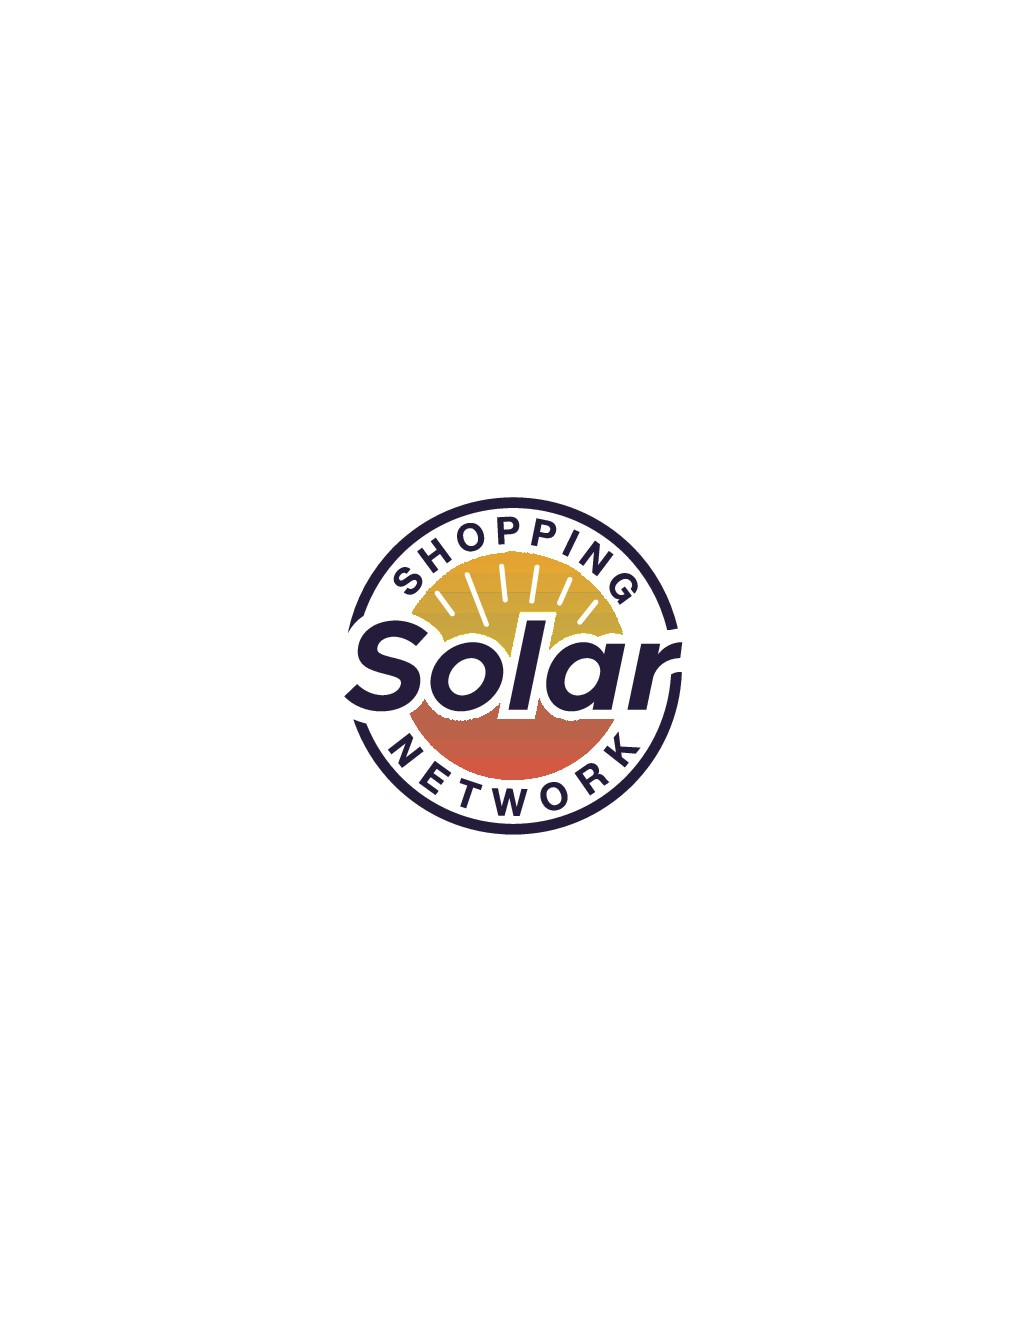 Online shopping network for solar panels for people's homes. Looking for a unique, world-class logo